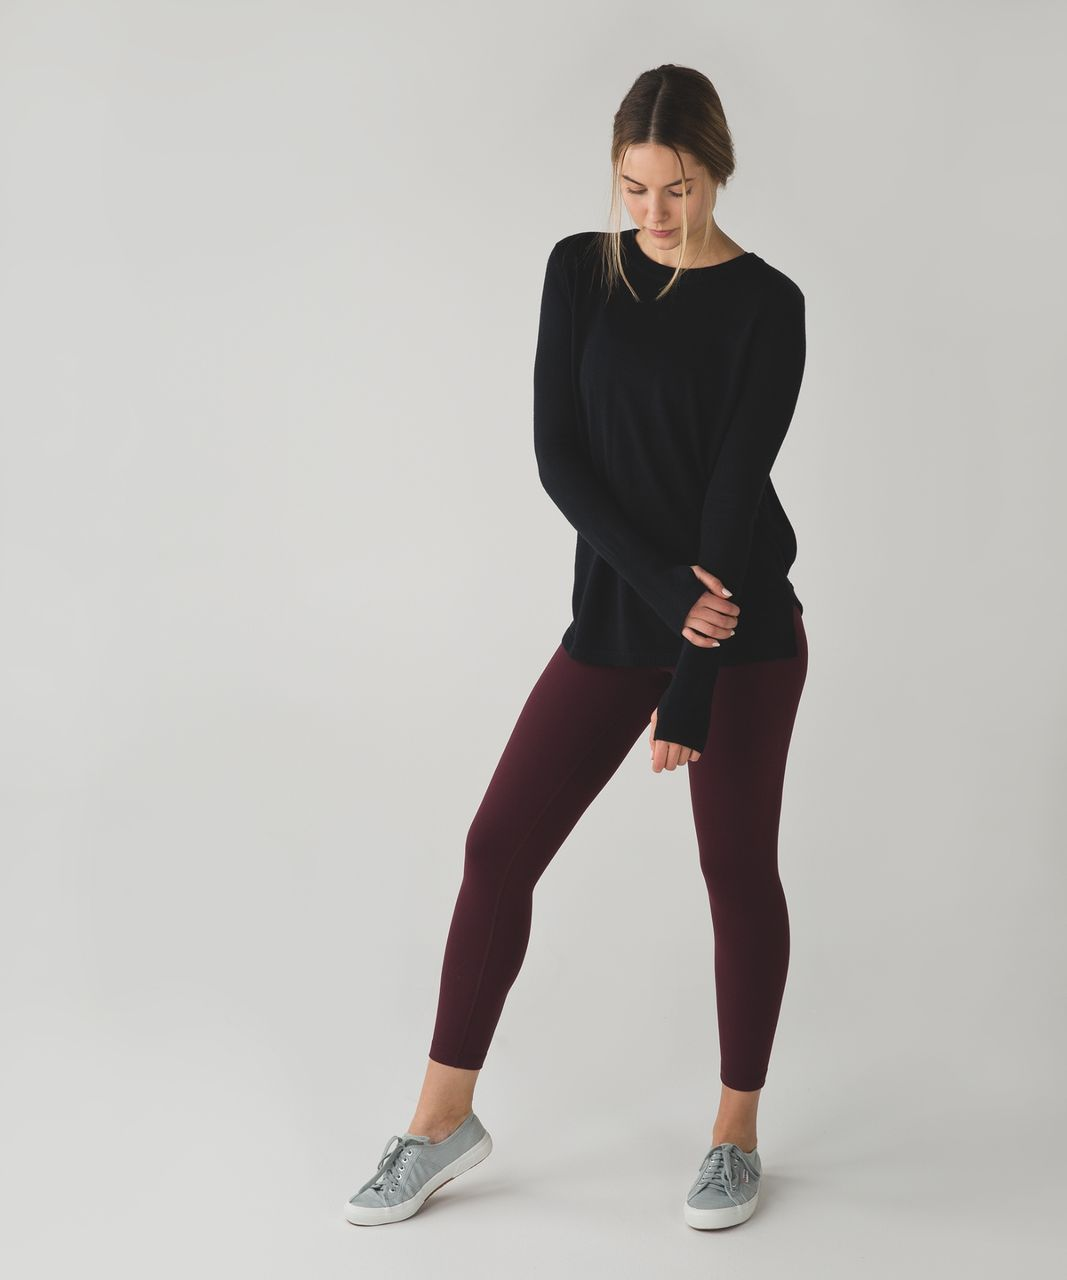 Lululemon Bring It Backbend Sweater - Black